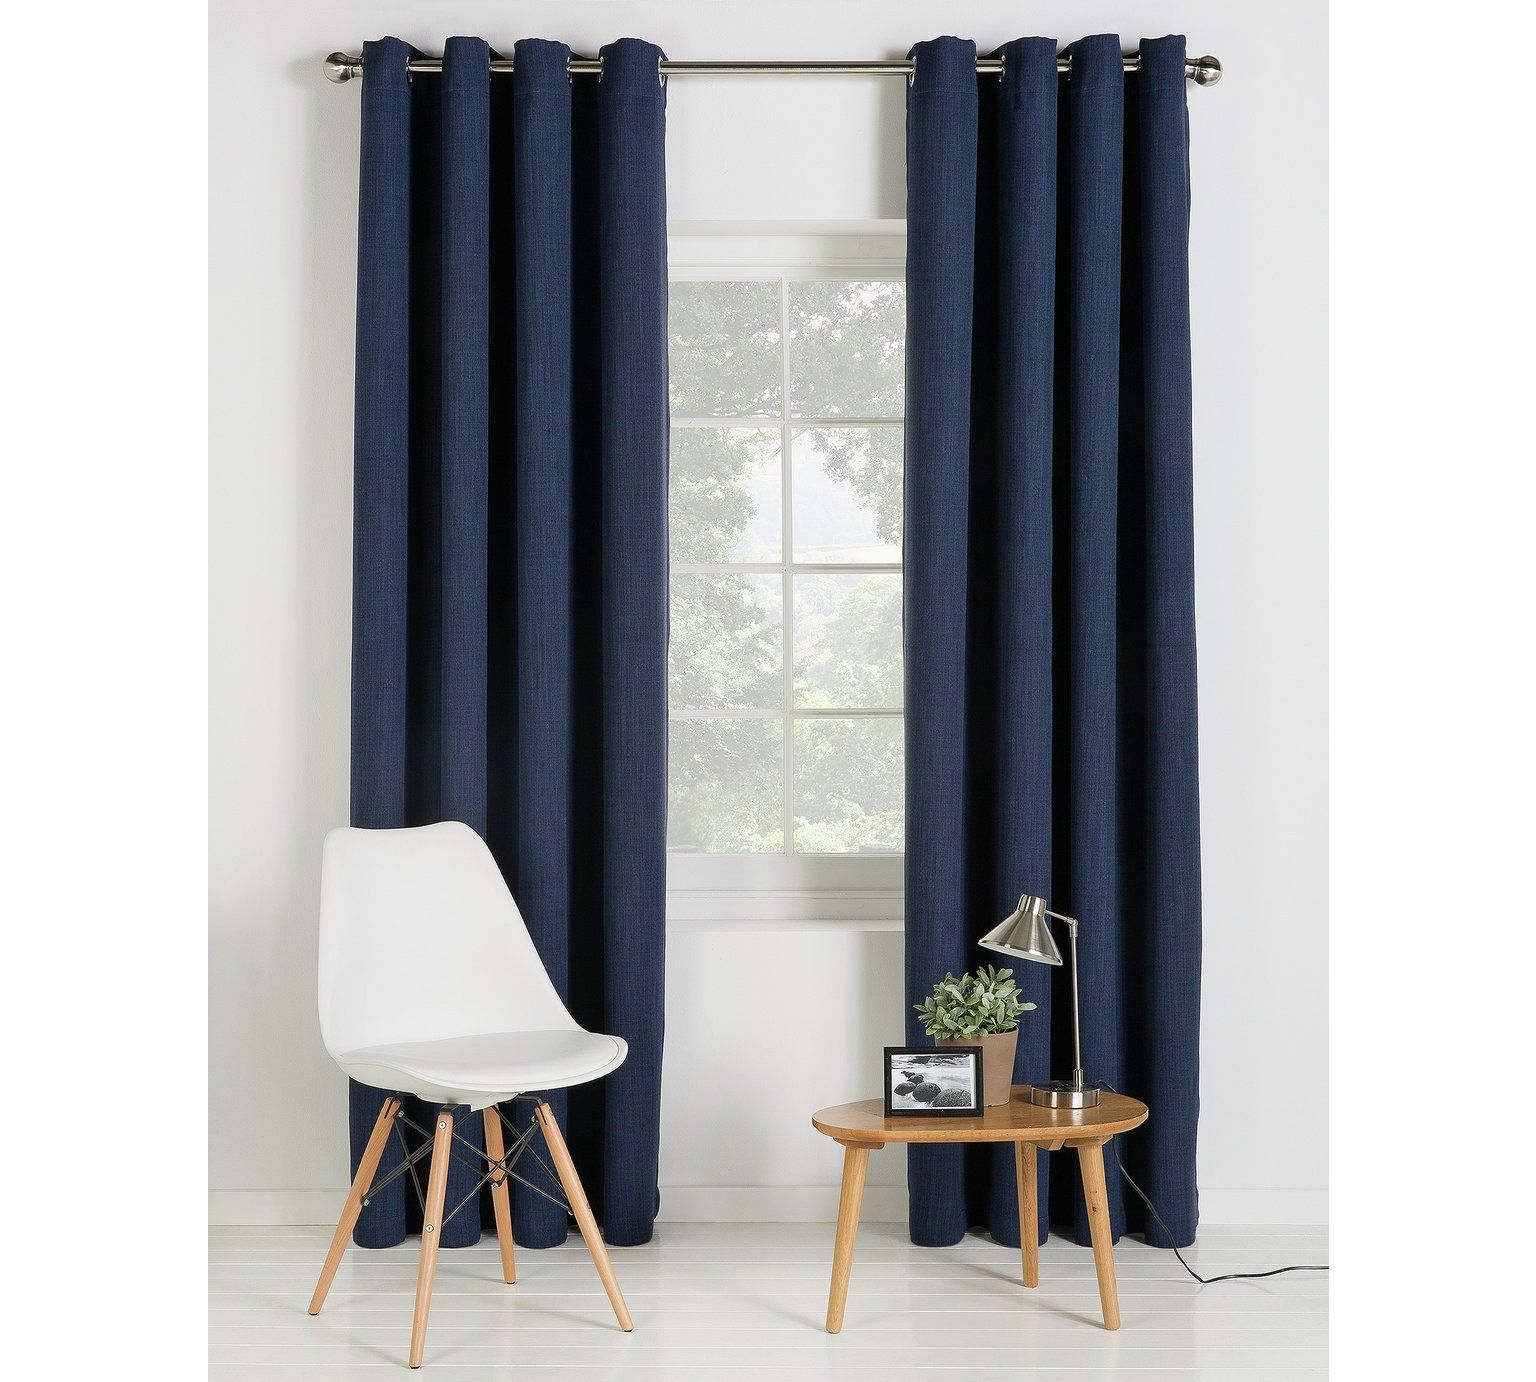 Buy Collection Linen Look Blackout Curtains 117x137cm Navy At